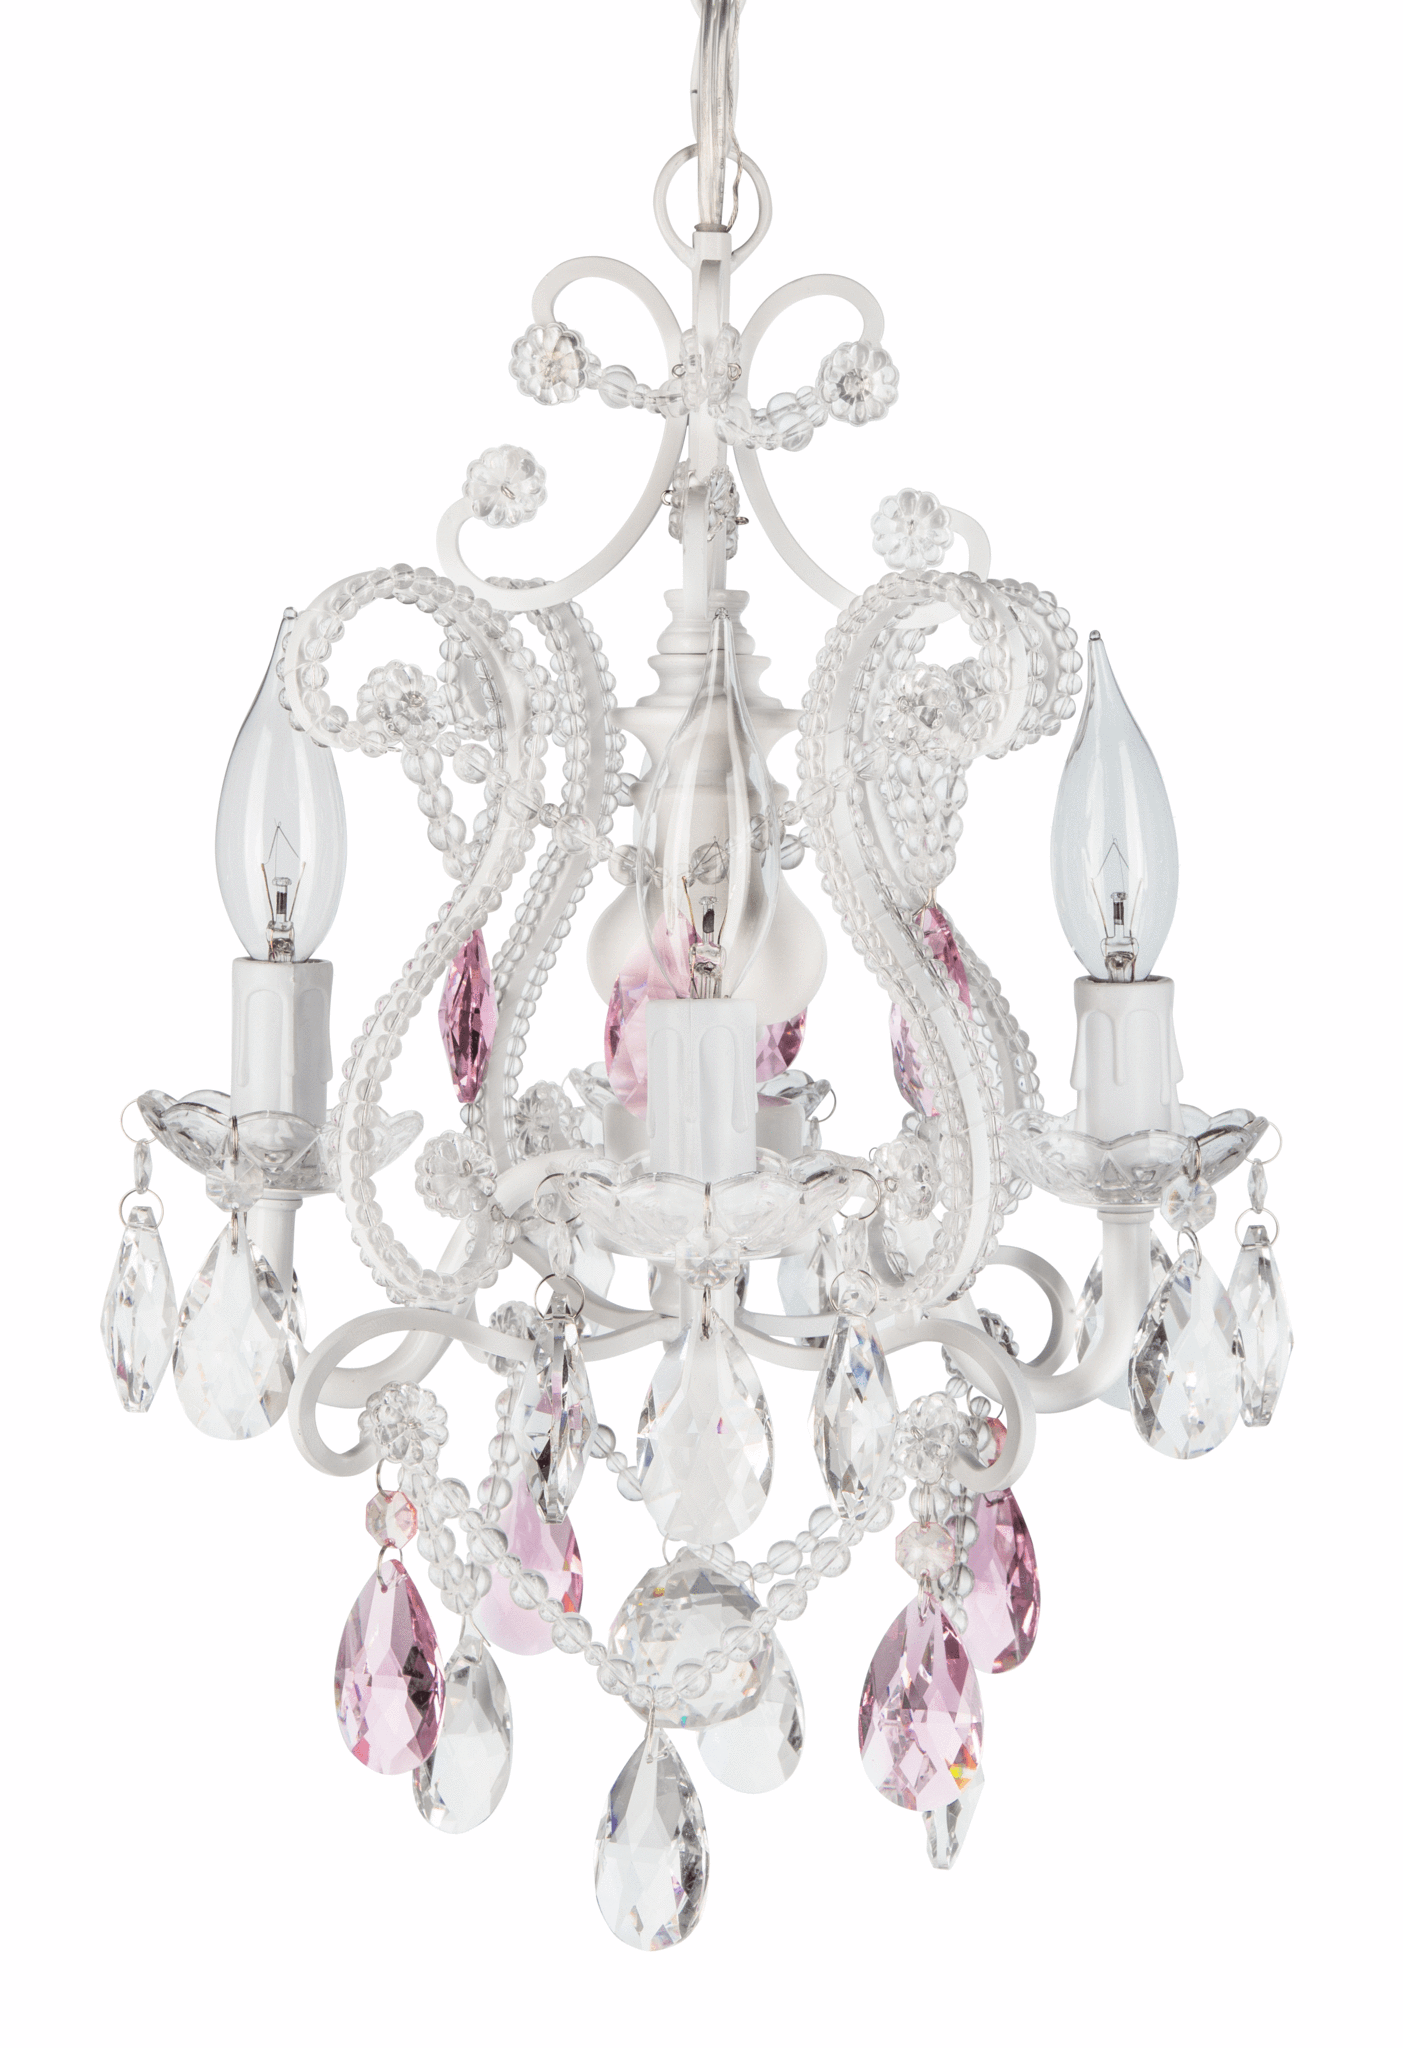 4 light mini crystal beaded plug in chandelier white w pink 4 light mini crystal beaded plug in chandelier white w pink crystals arubaitofo Image collections